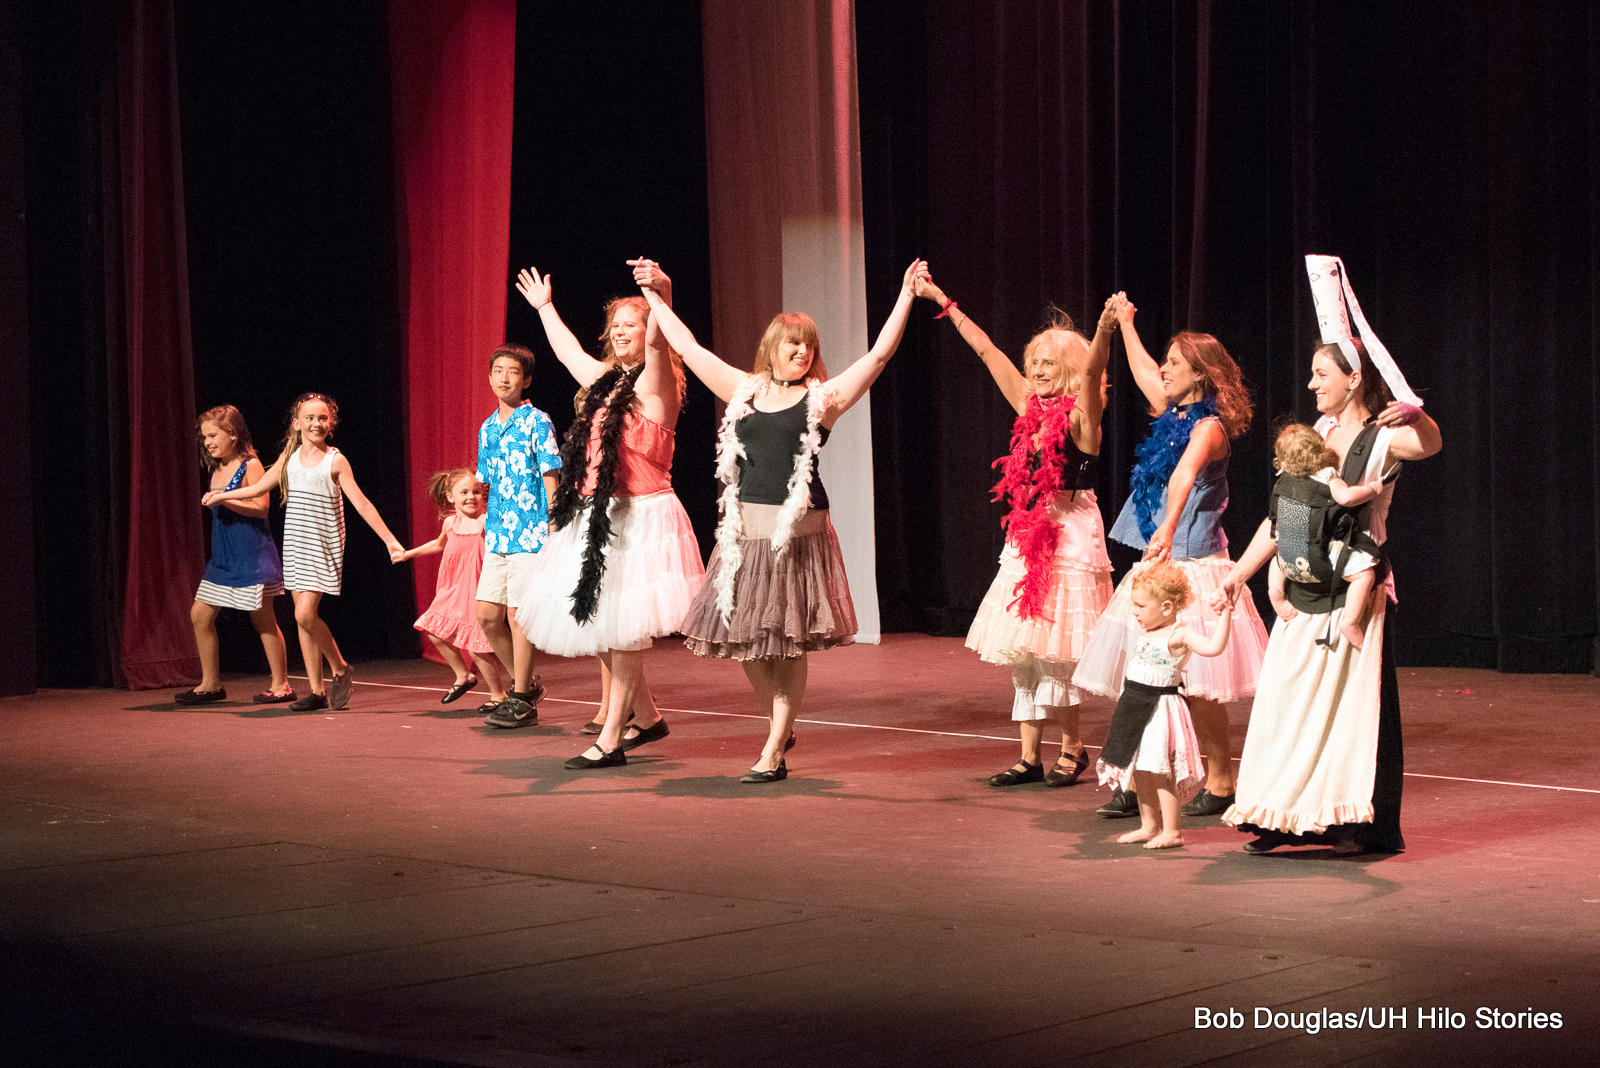 Girls raising arms together for final bow after performance.